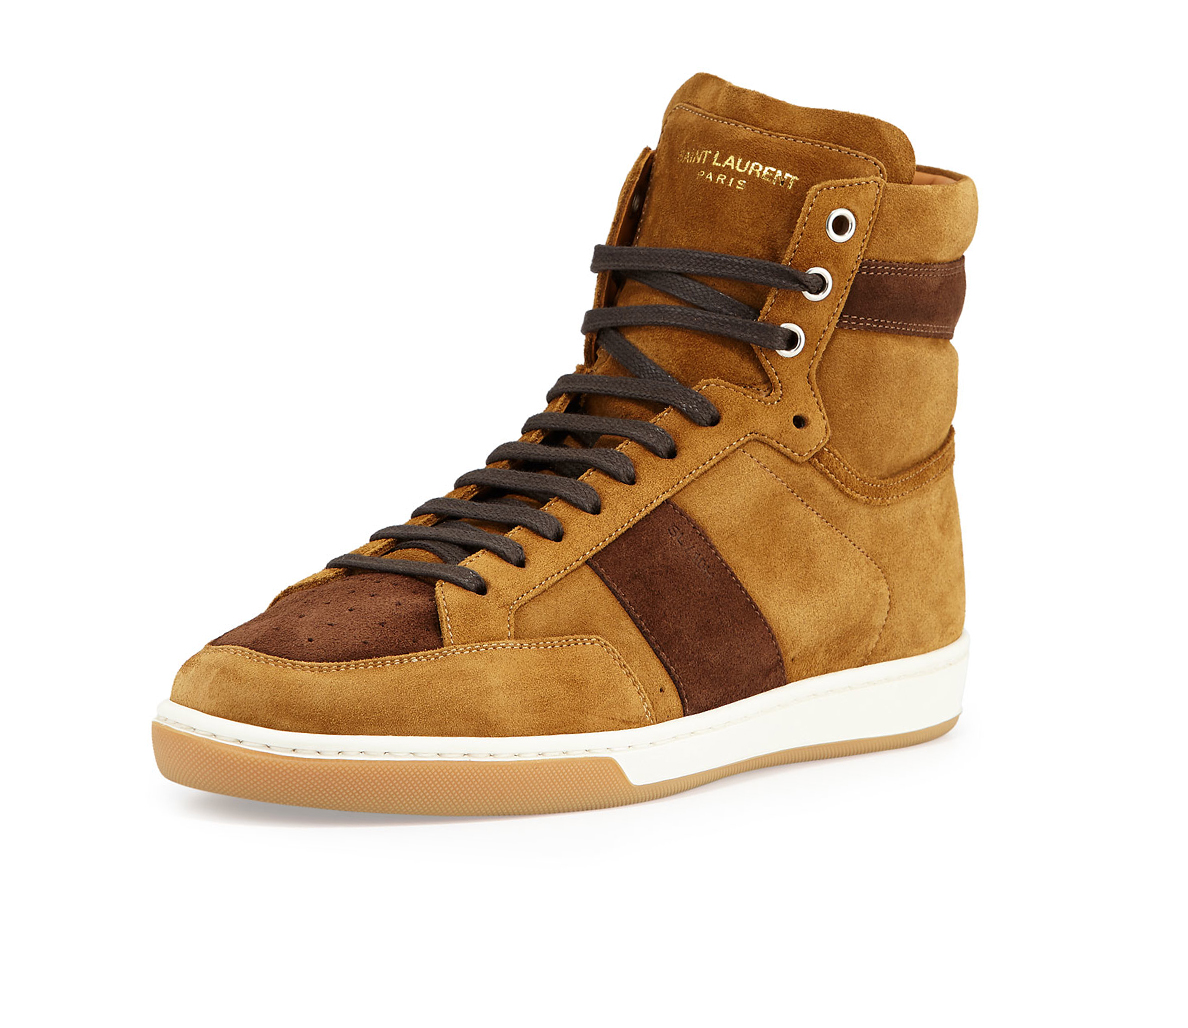 89bbbdedb8 The Most Stylish Sneakers for Men in Fall 2016